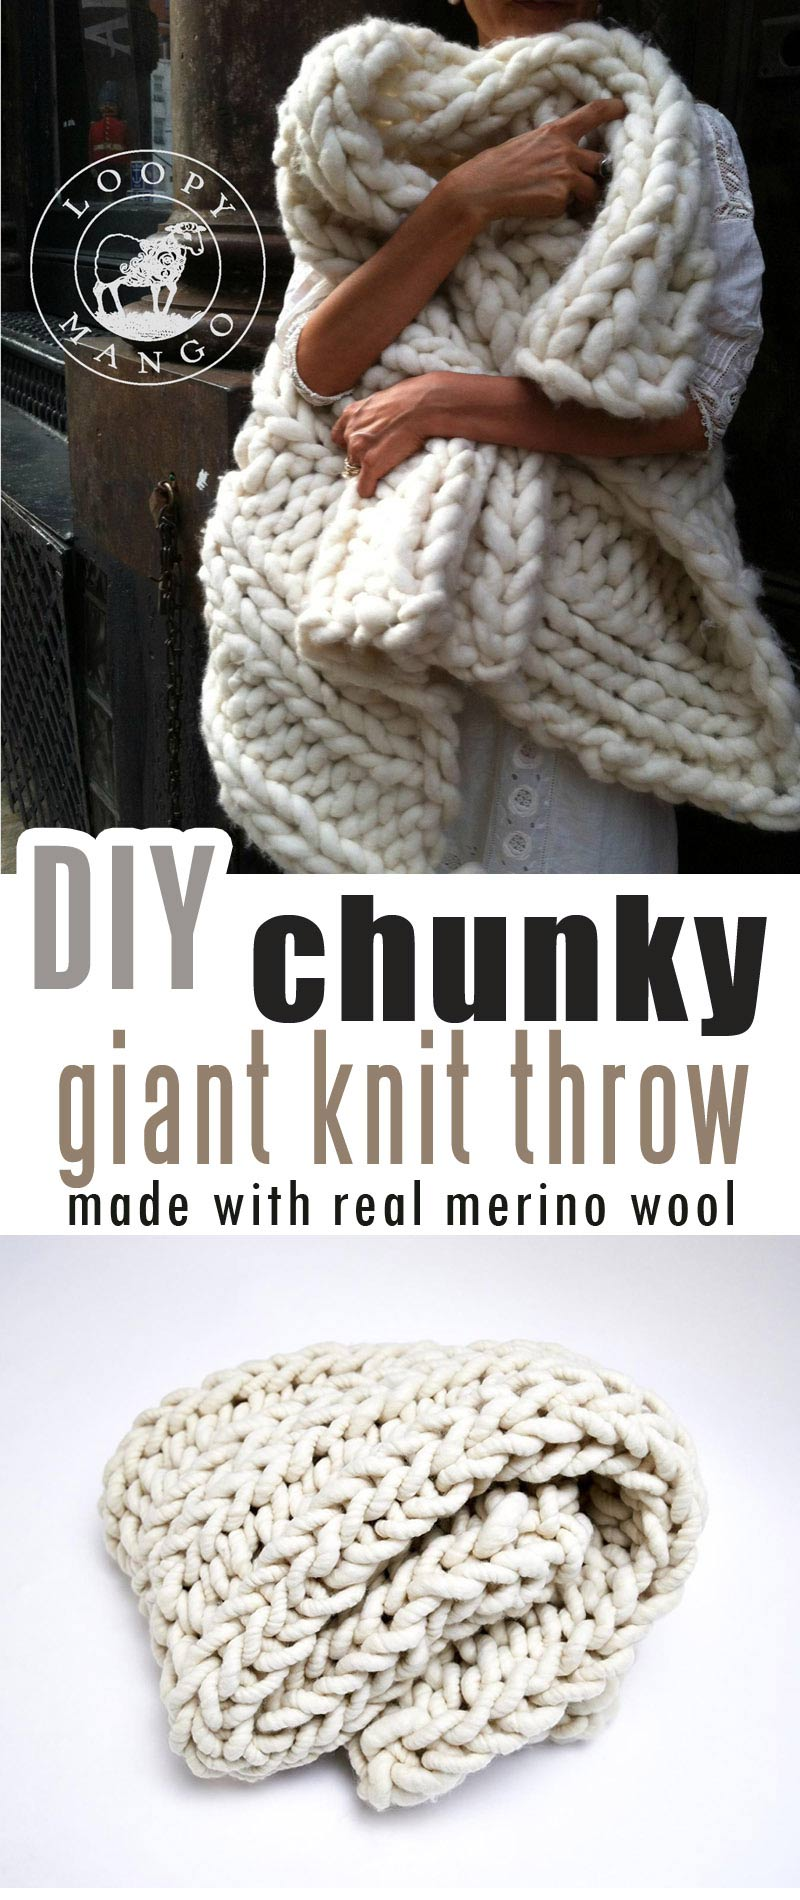 Chunky knit blanket yarn for Chunky Throw.  Knitted with Merino Wool Yarn #chunkymerinowoolyarn #armknitting #diychunkyblanket #chunkyblanket #chunkyknitthrow